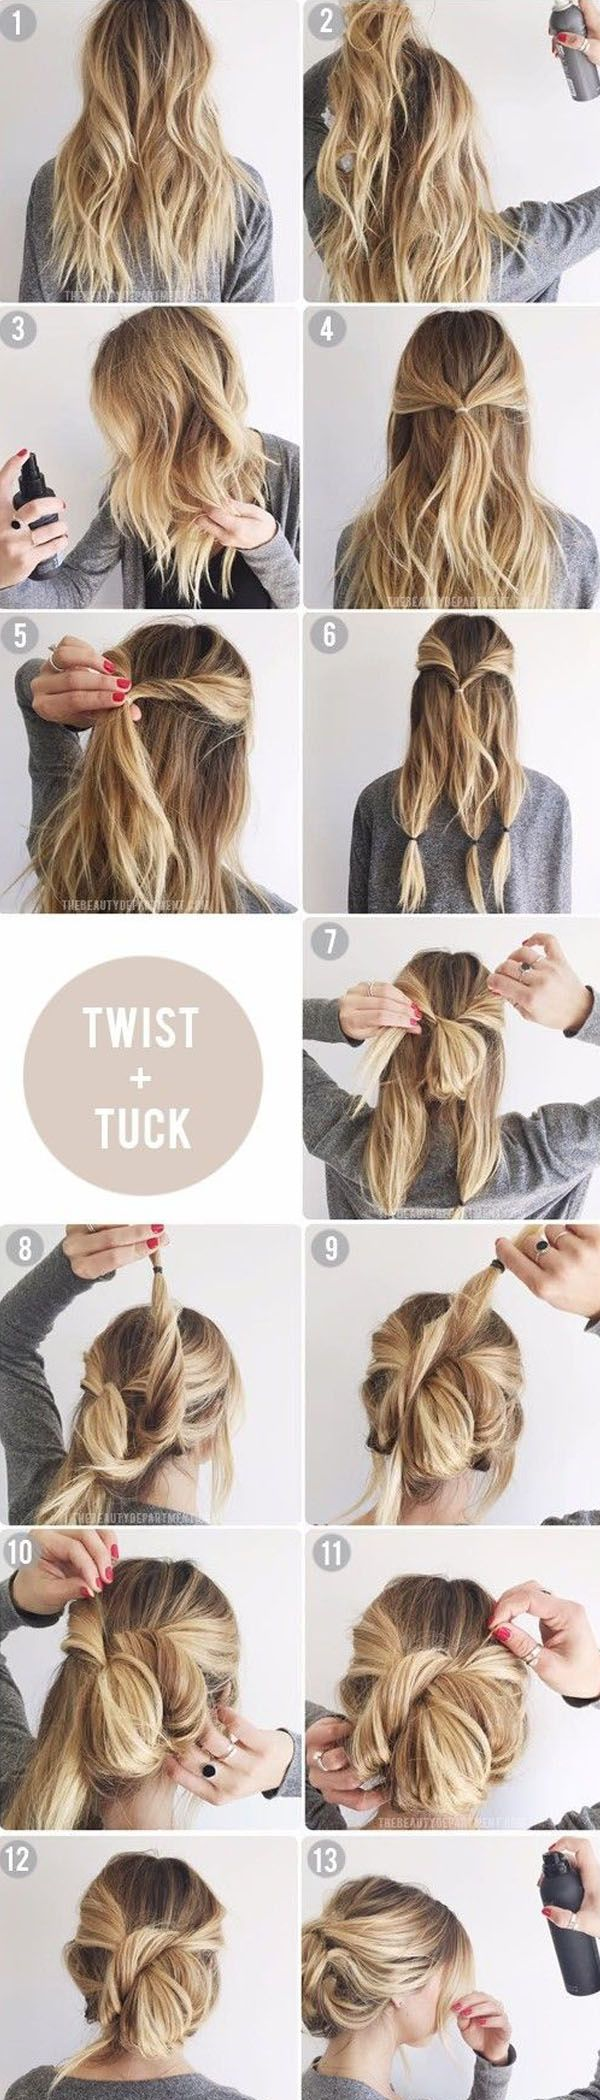 Cowgirl - Doable Updos